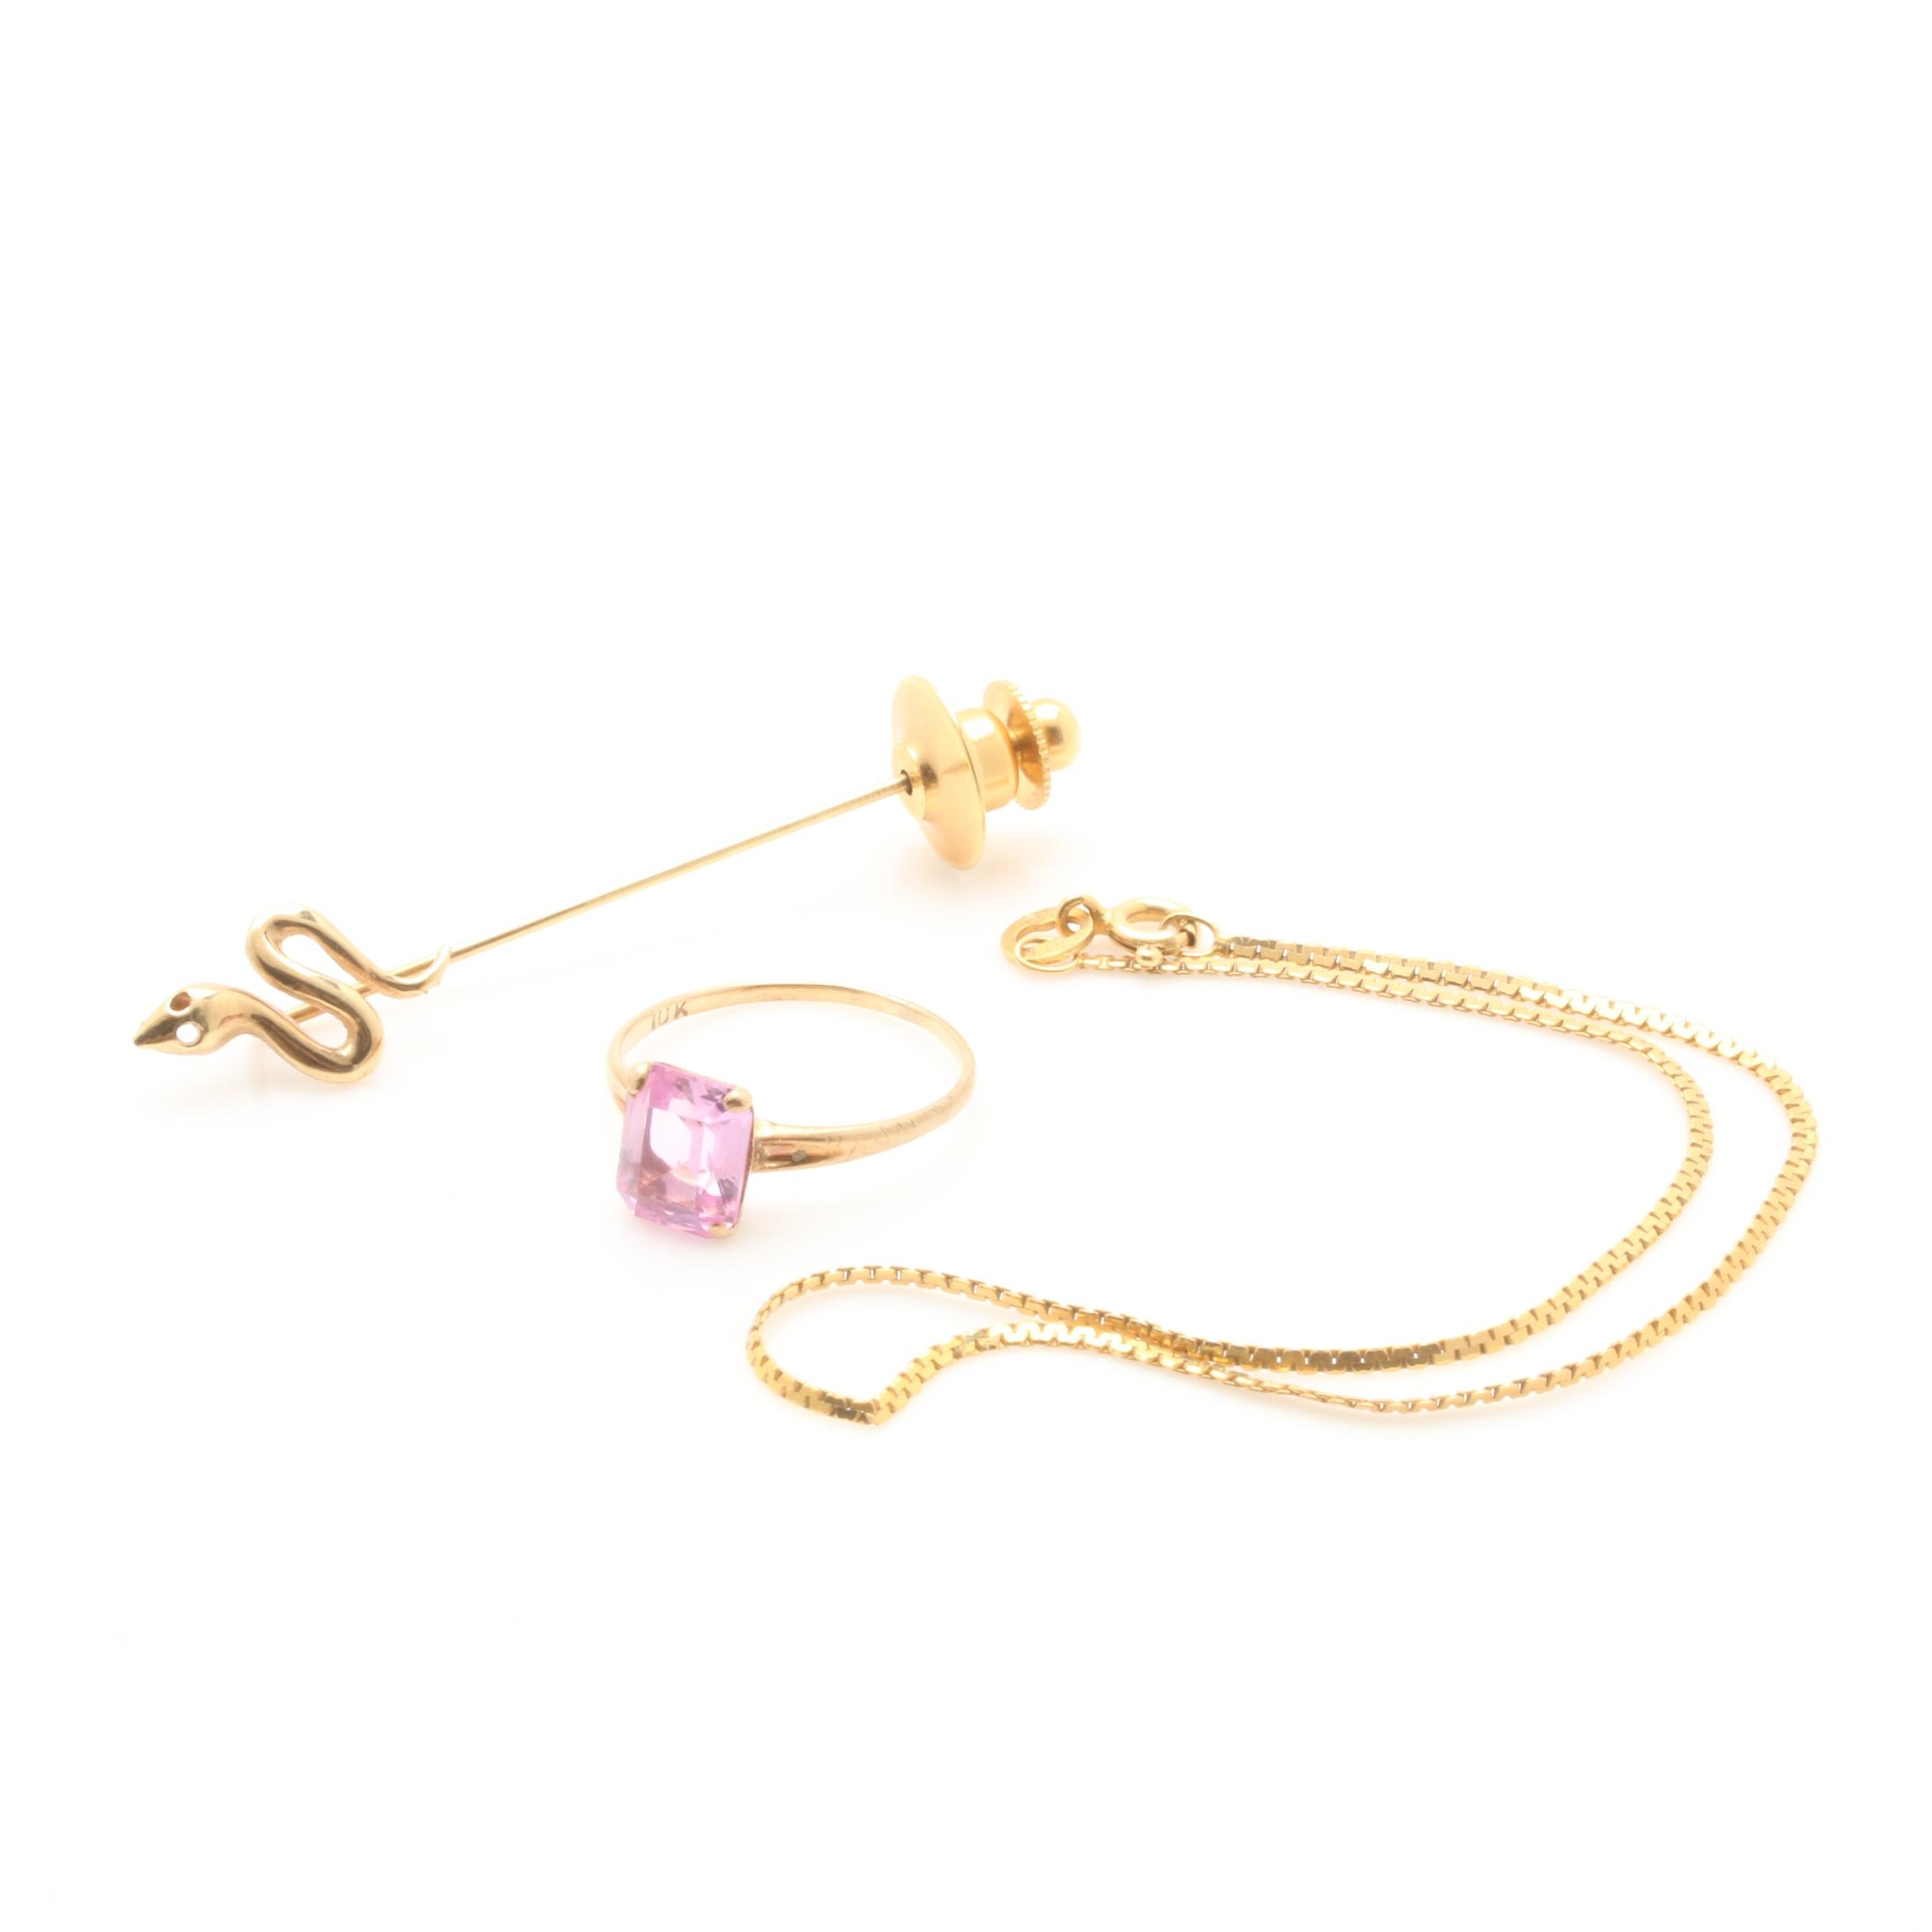 14K Yellow Gold Stick Pin with 10K Bracelet and Synthetic Pink Sapphire Ring